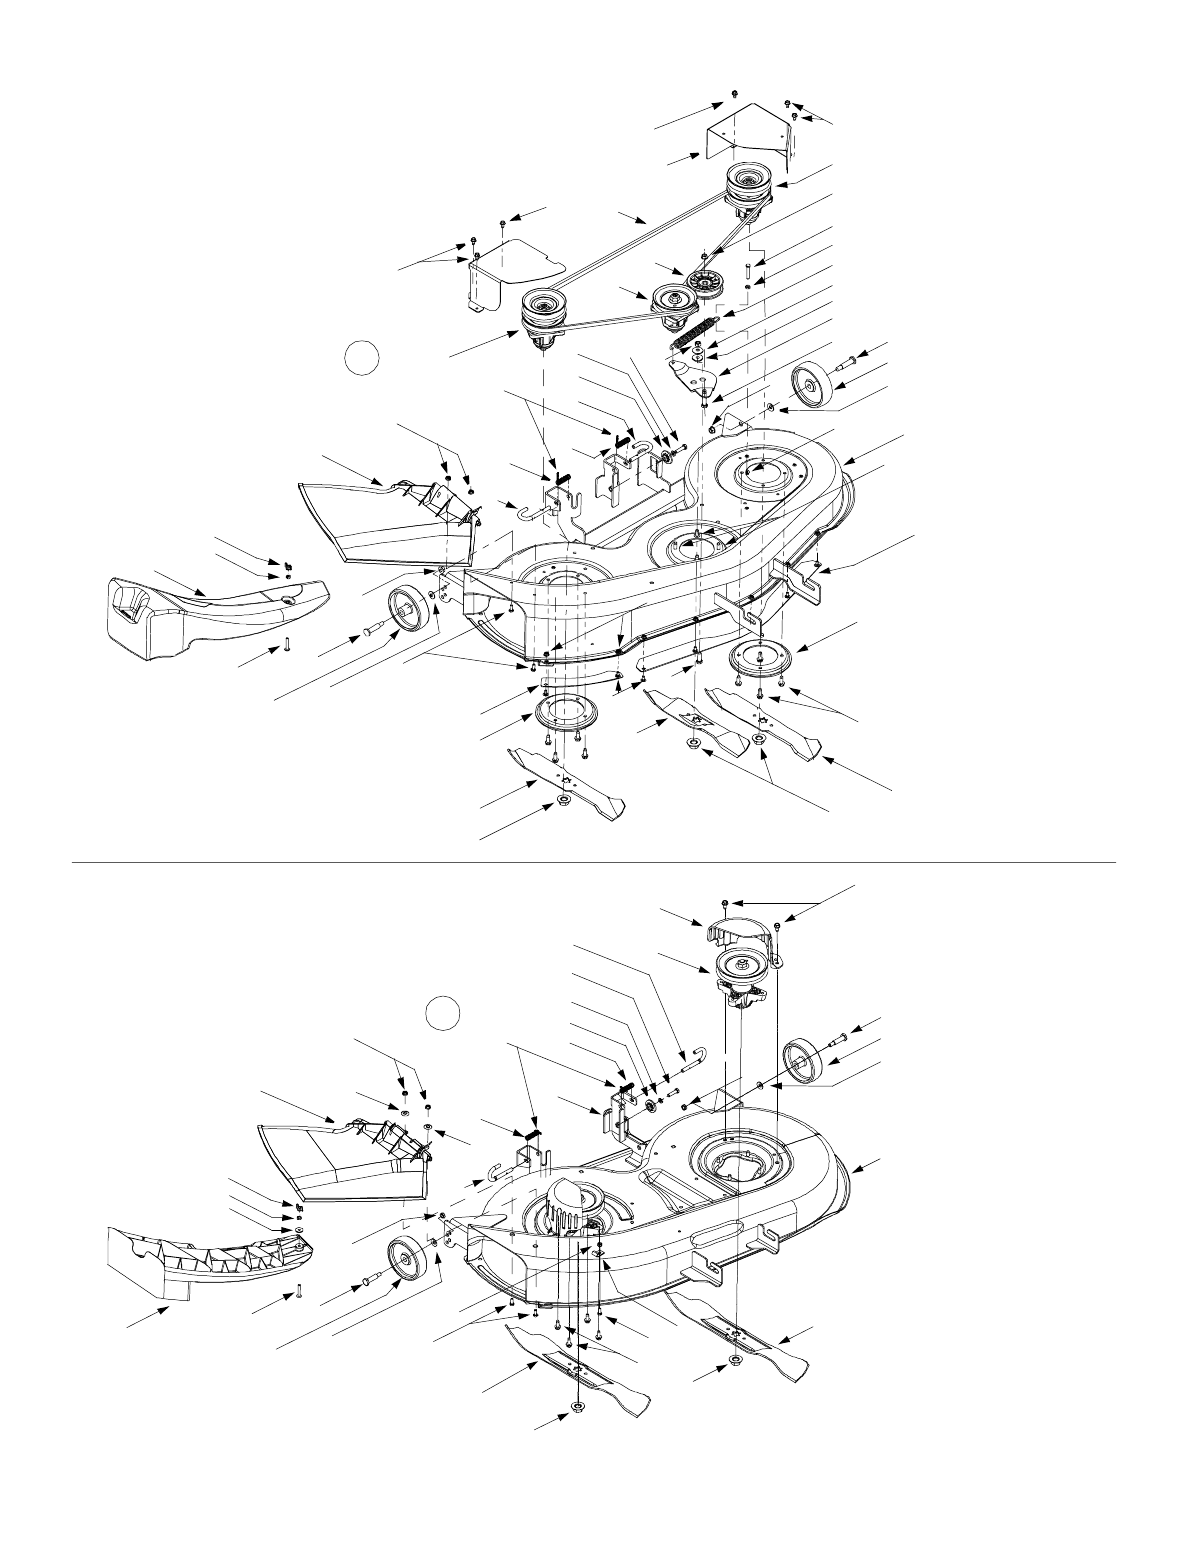 Page 36 of Yard-Man Lawn Mower 604 User Guide